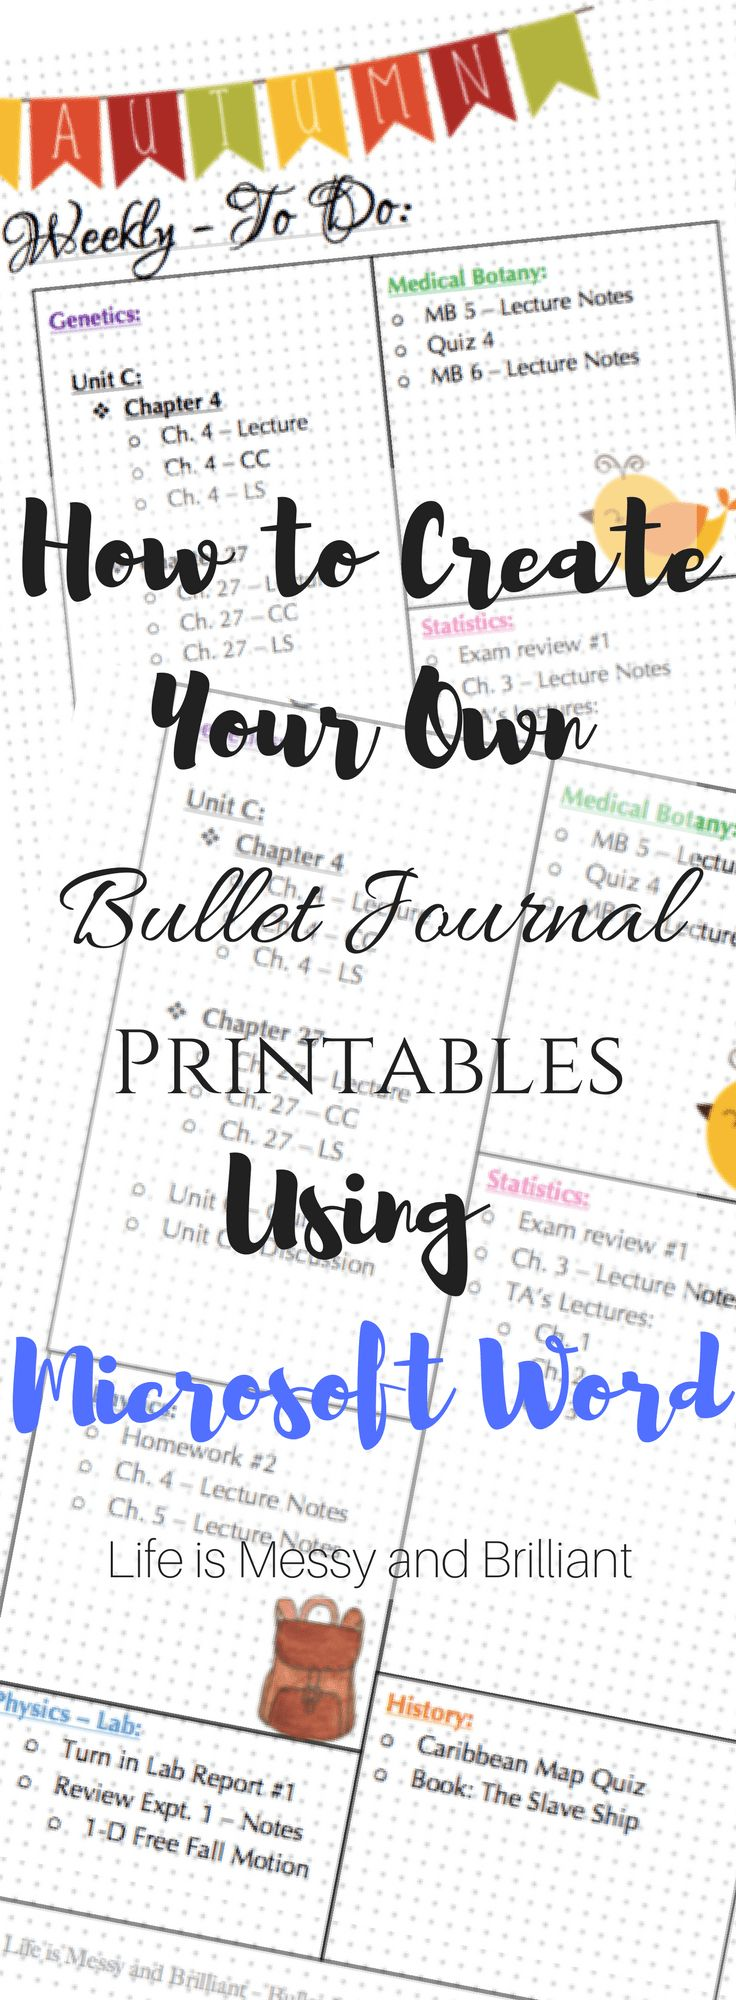 Great learning tool! Can't wait to try it out and make my own printable page